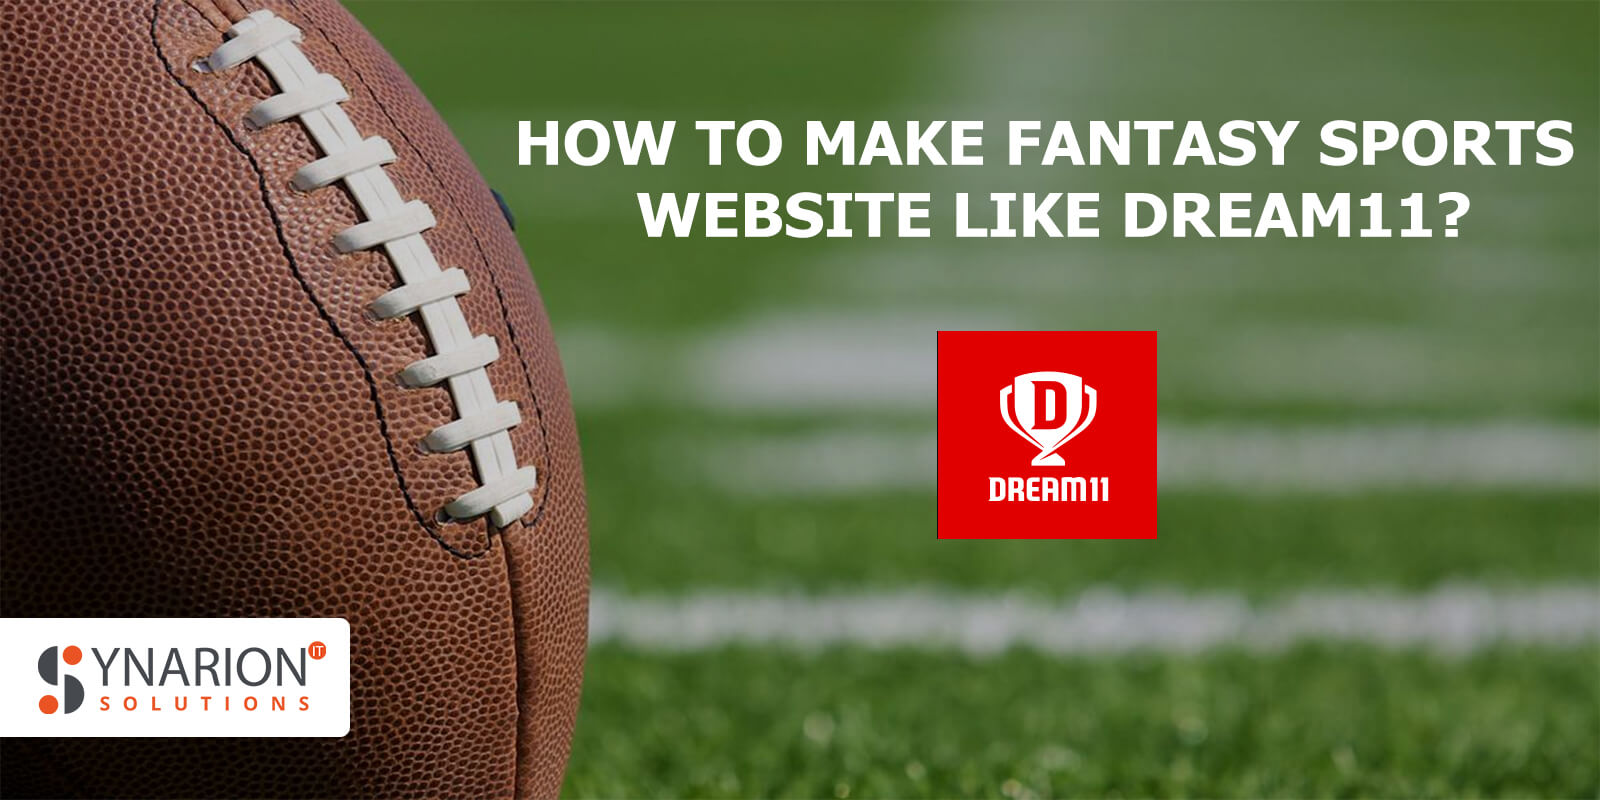 How to Make Fantasy Sports Website like Dream11?